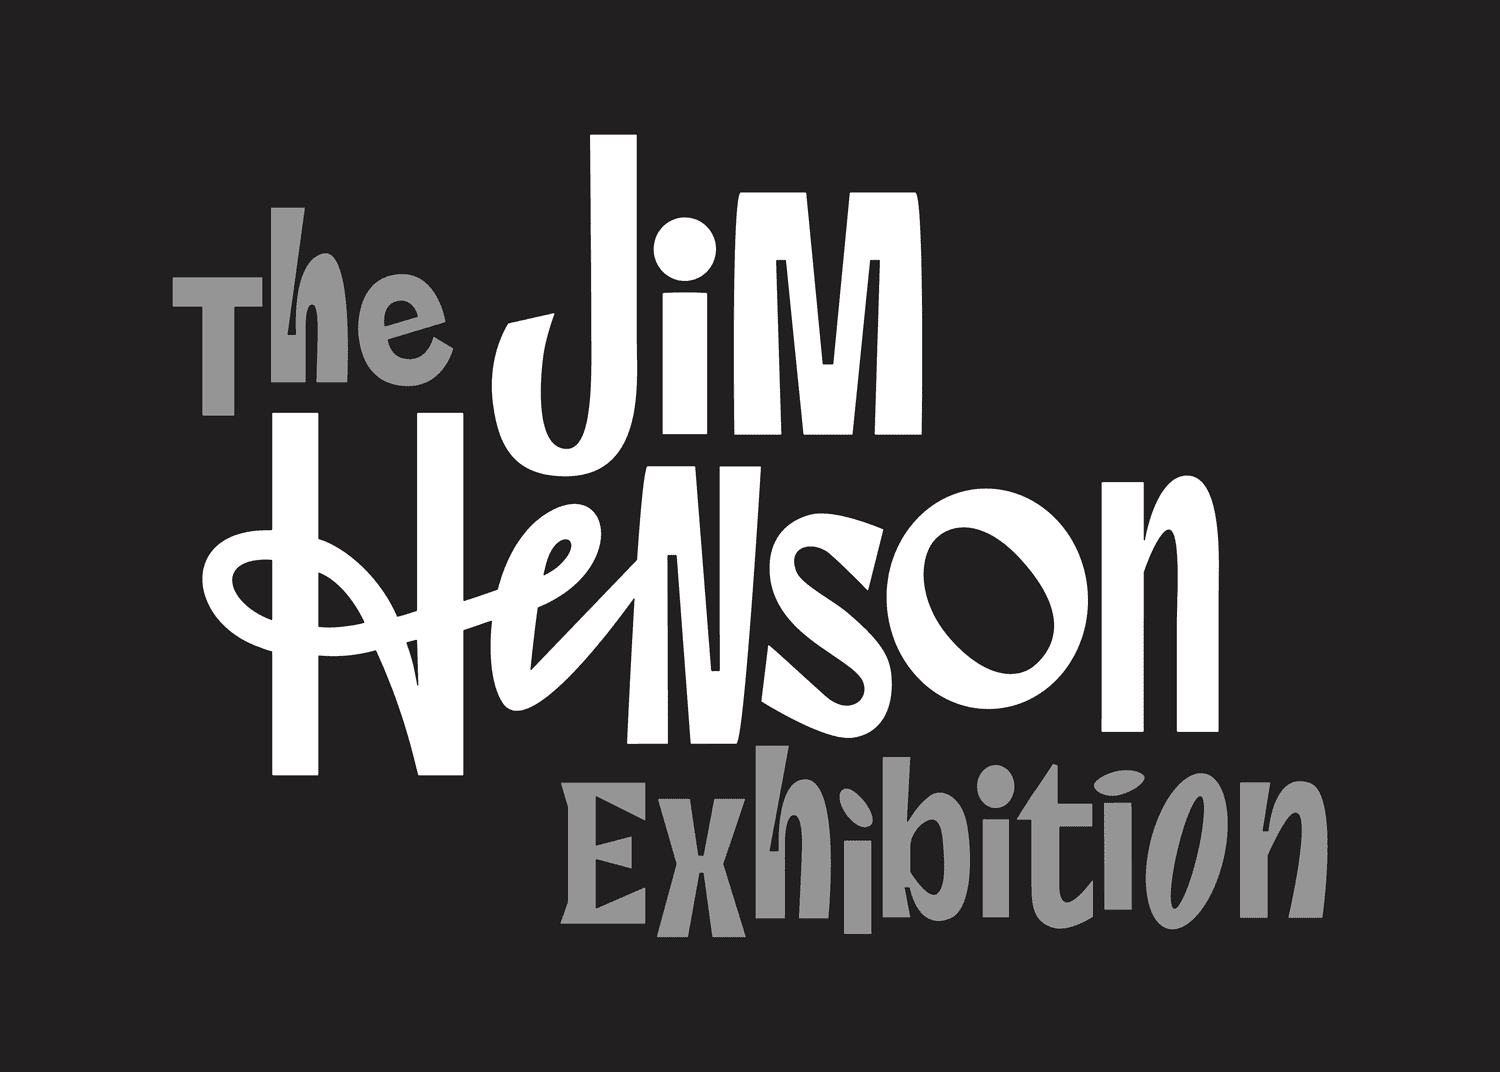 TYPOGRAPHY FOR THE JIM HENSON EXHIBITION AT THE MUSEUM OF THE MOVING IMAGE NYC